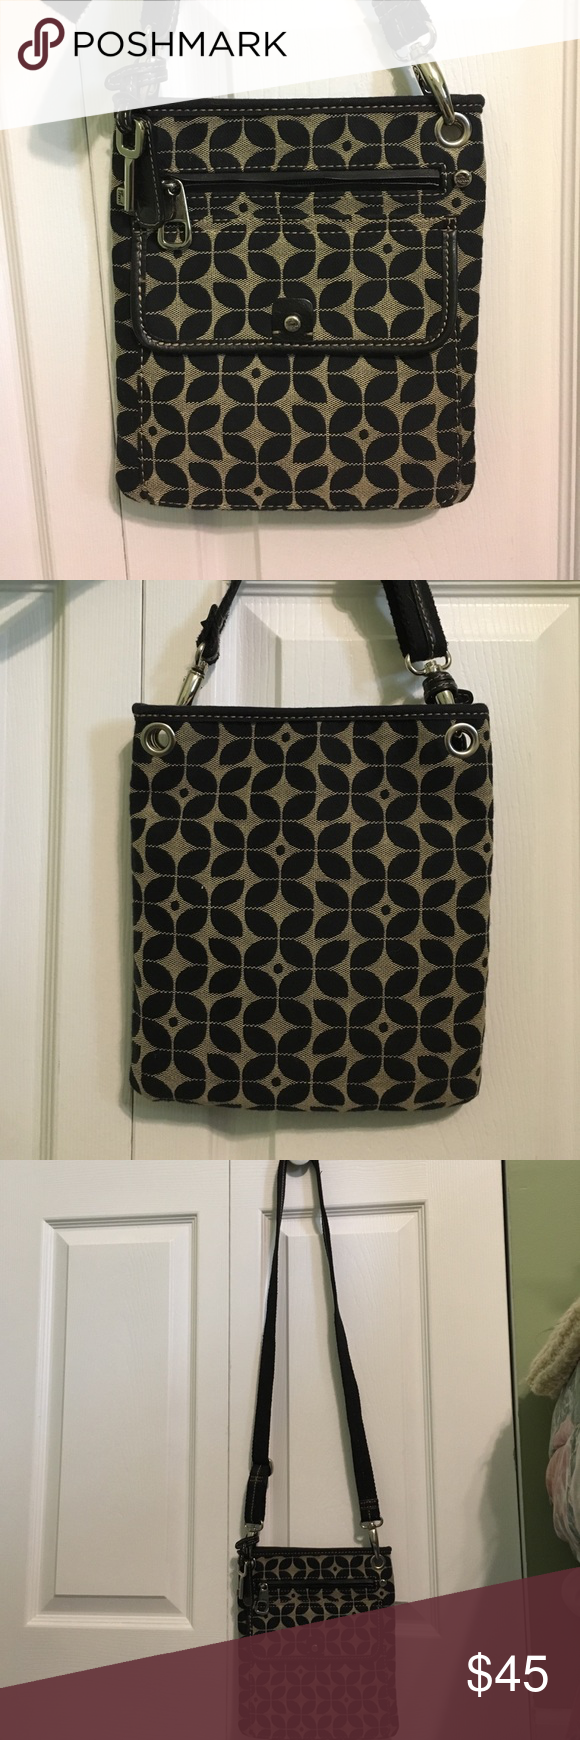 Fossil Crossbody - Black & Tan Canvas Pattern This Fossil crossbody bag has only been used a few times and is still in excellent condition. Lots of pockets for interior and exterior storage. Cute canvas pattern. Adjustable/removable canvas strap. Fossil Bags Crossbody Bags